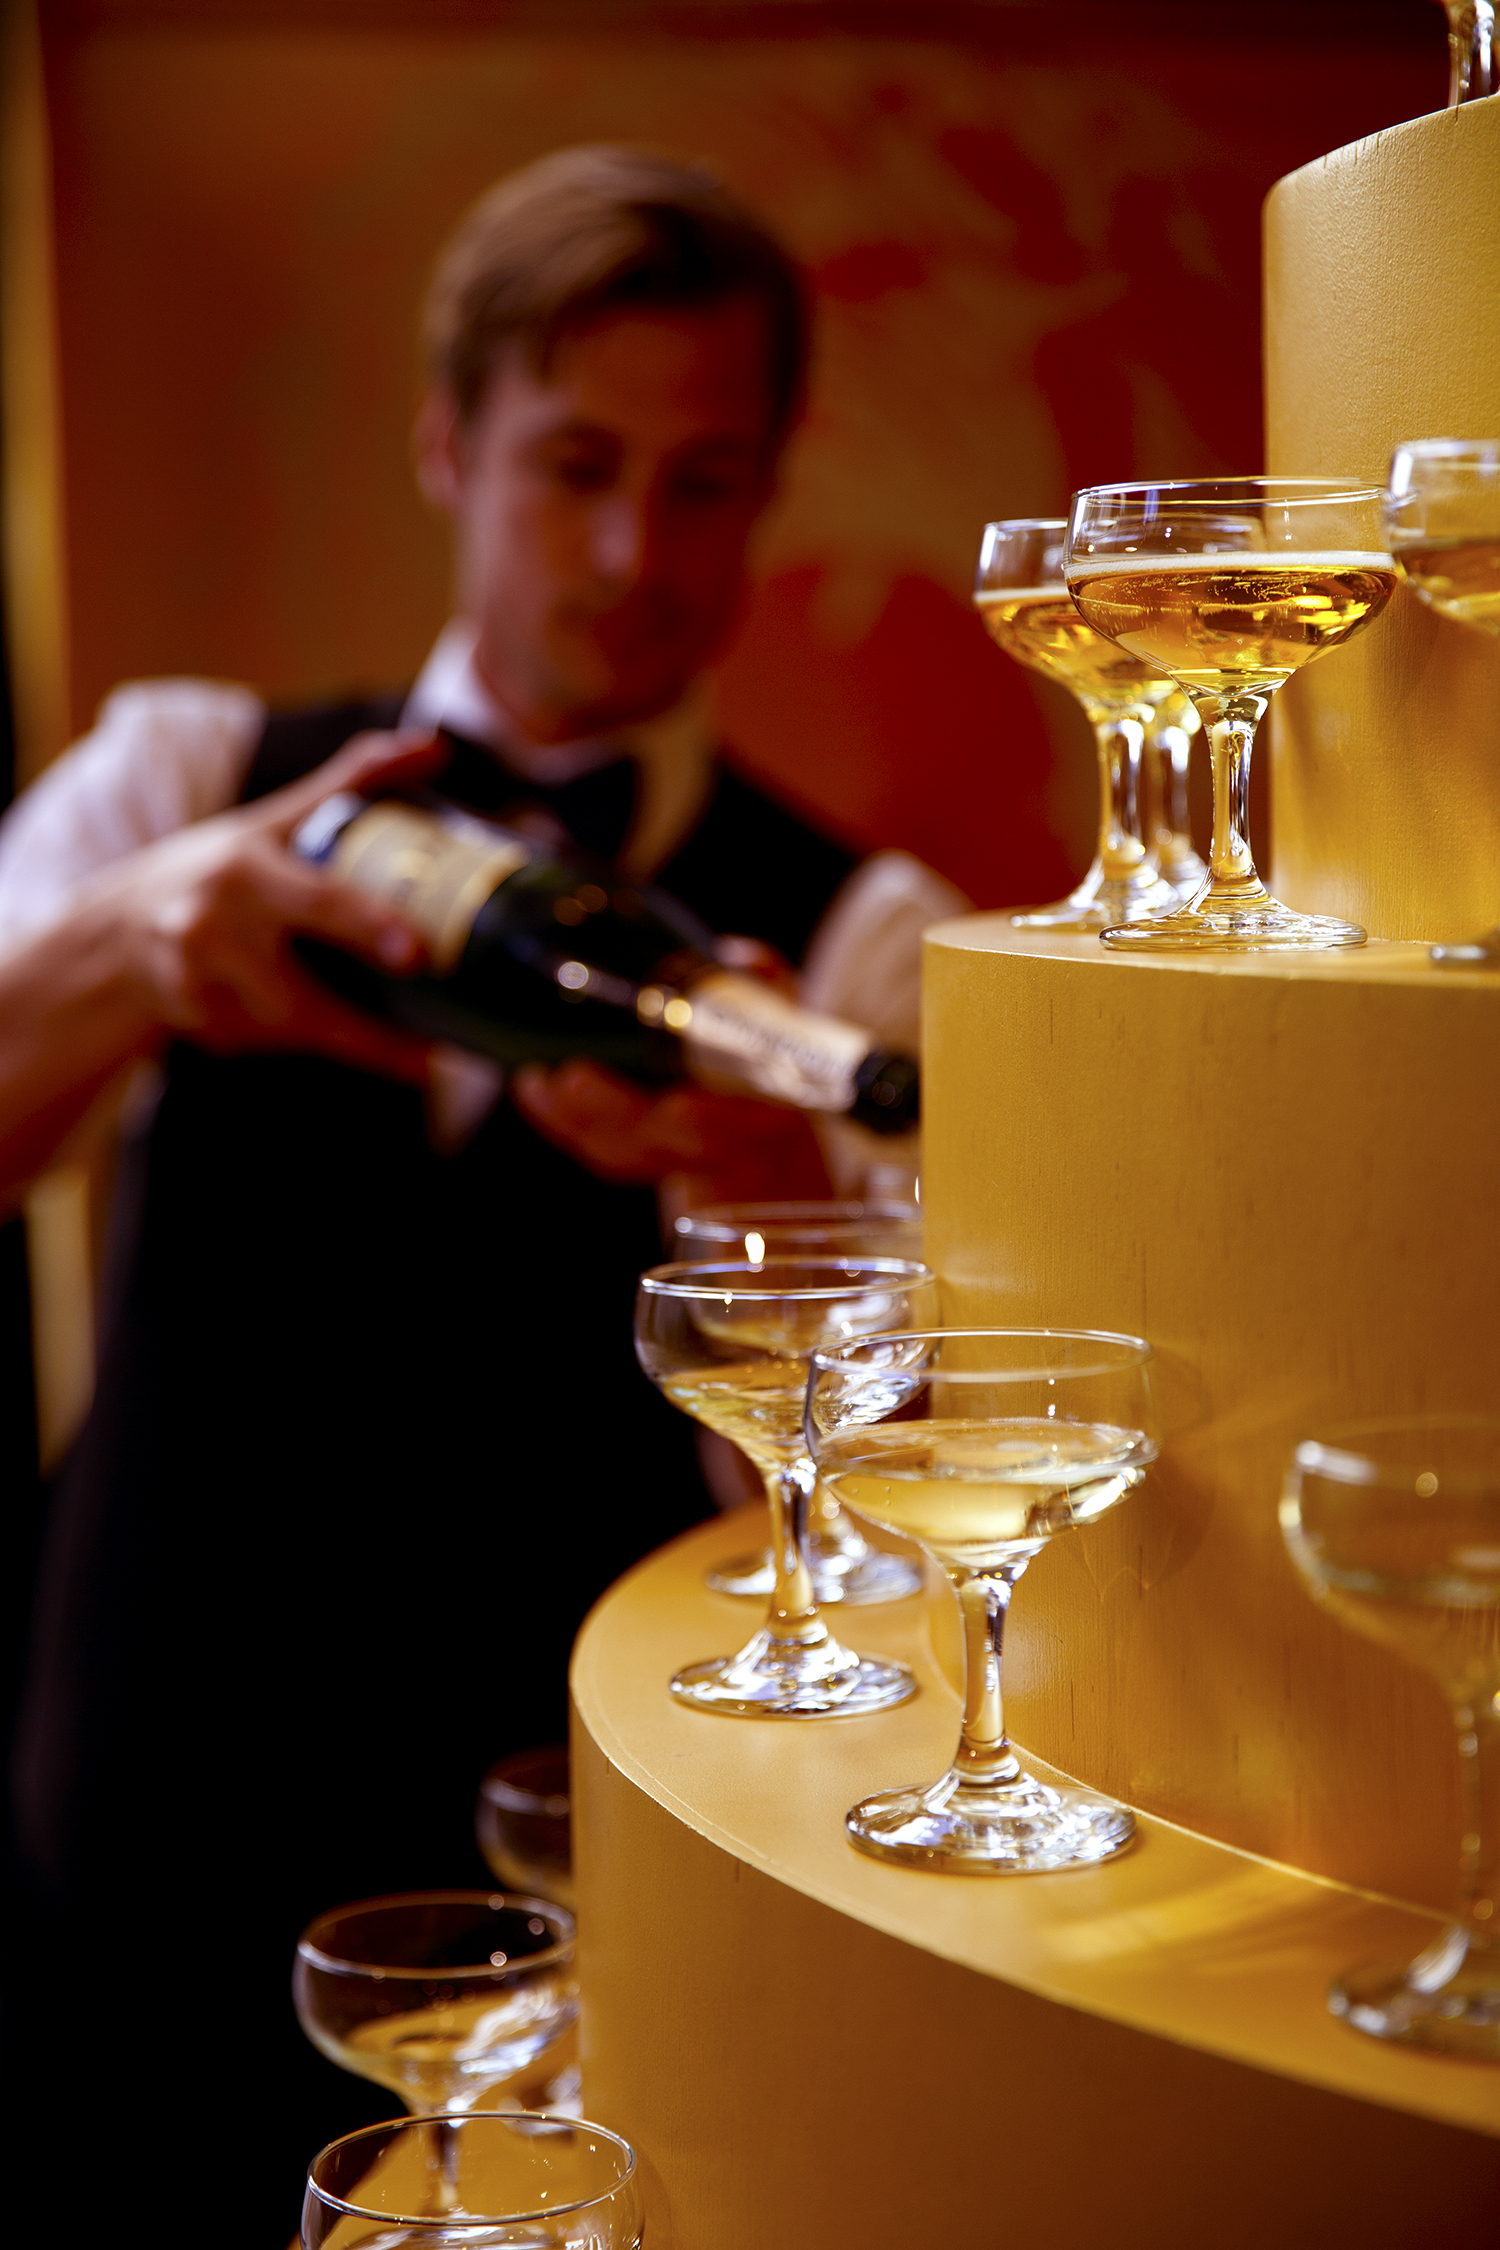 01 Taylor filling champagne tower2.jpg